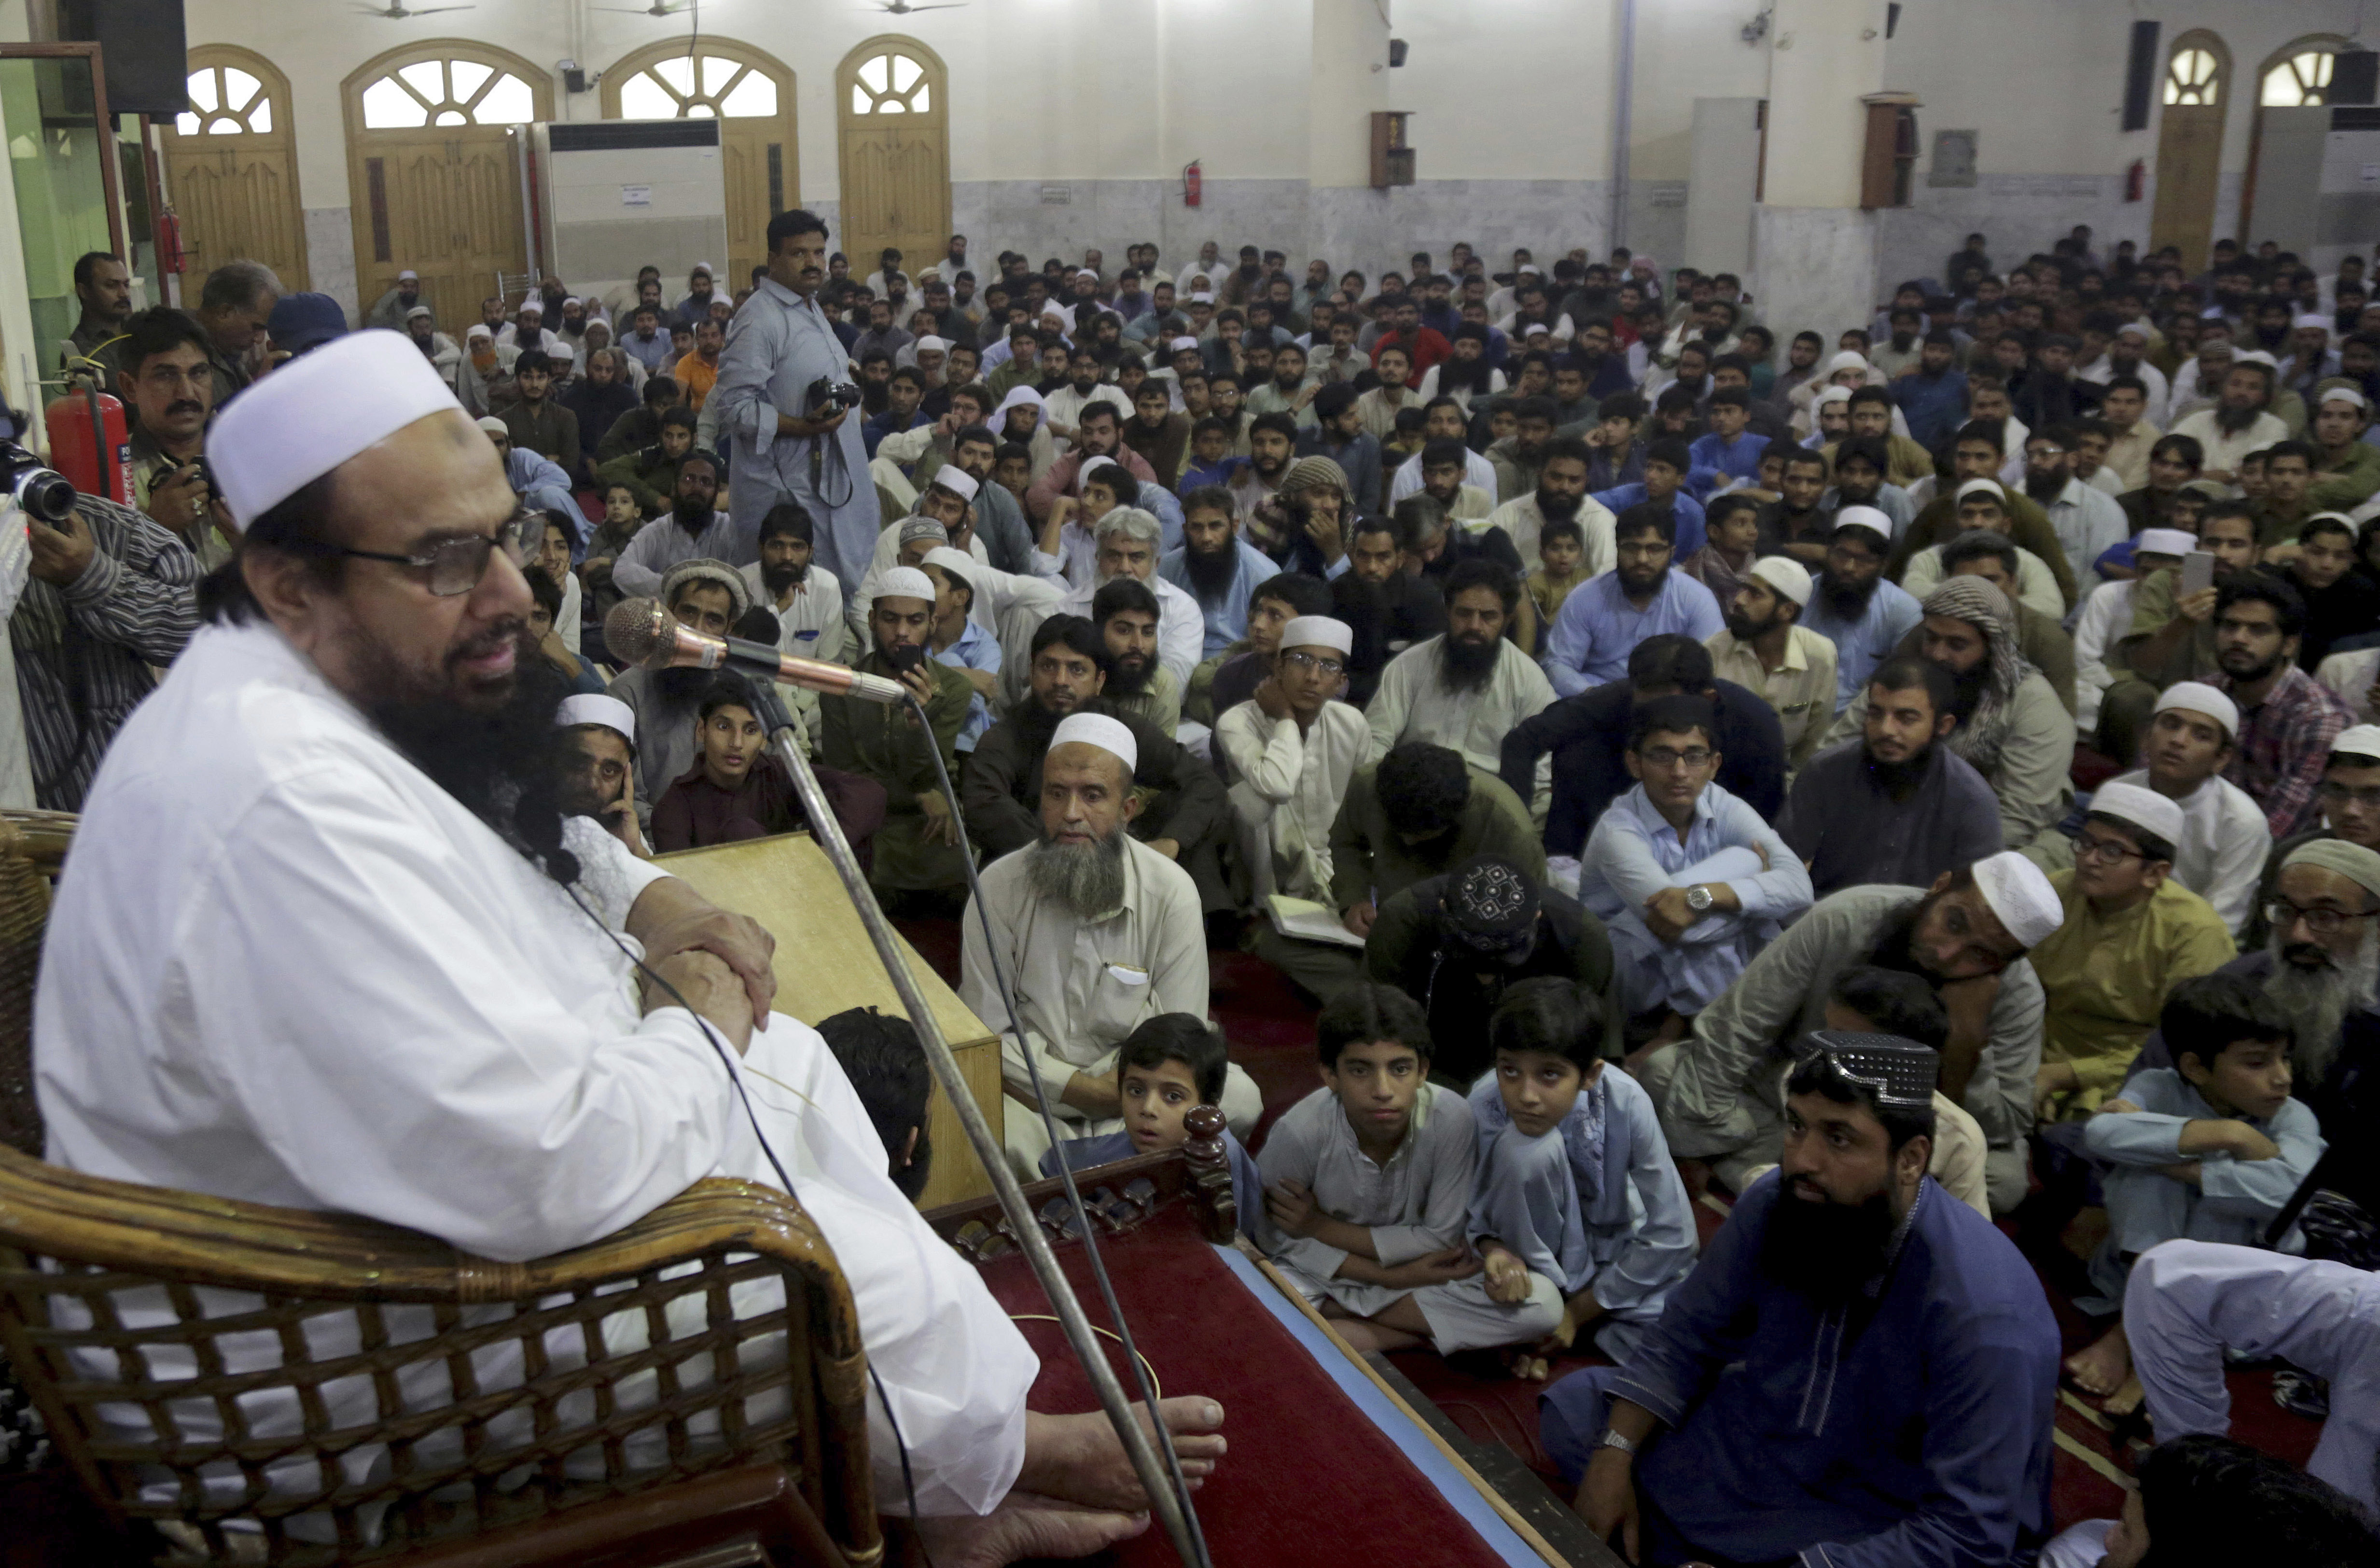 FILE - Pakistani cleric Hafiz Saeed, the founder of the outlawed Lashkar-e-Taiba group, which was blamed for the 2008 Mumbai attacks that killed 166 people, addresses at a mosque in Lahore, Pakistan, Nov. 1, 2018.